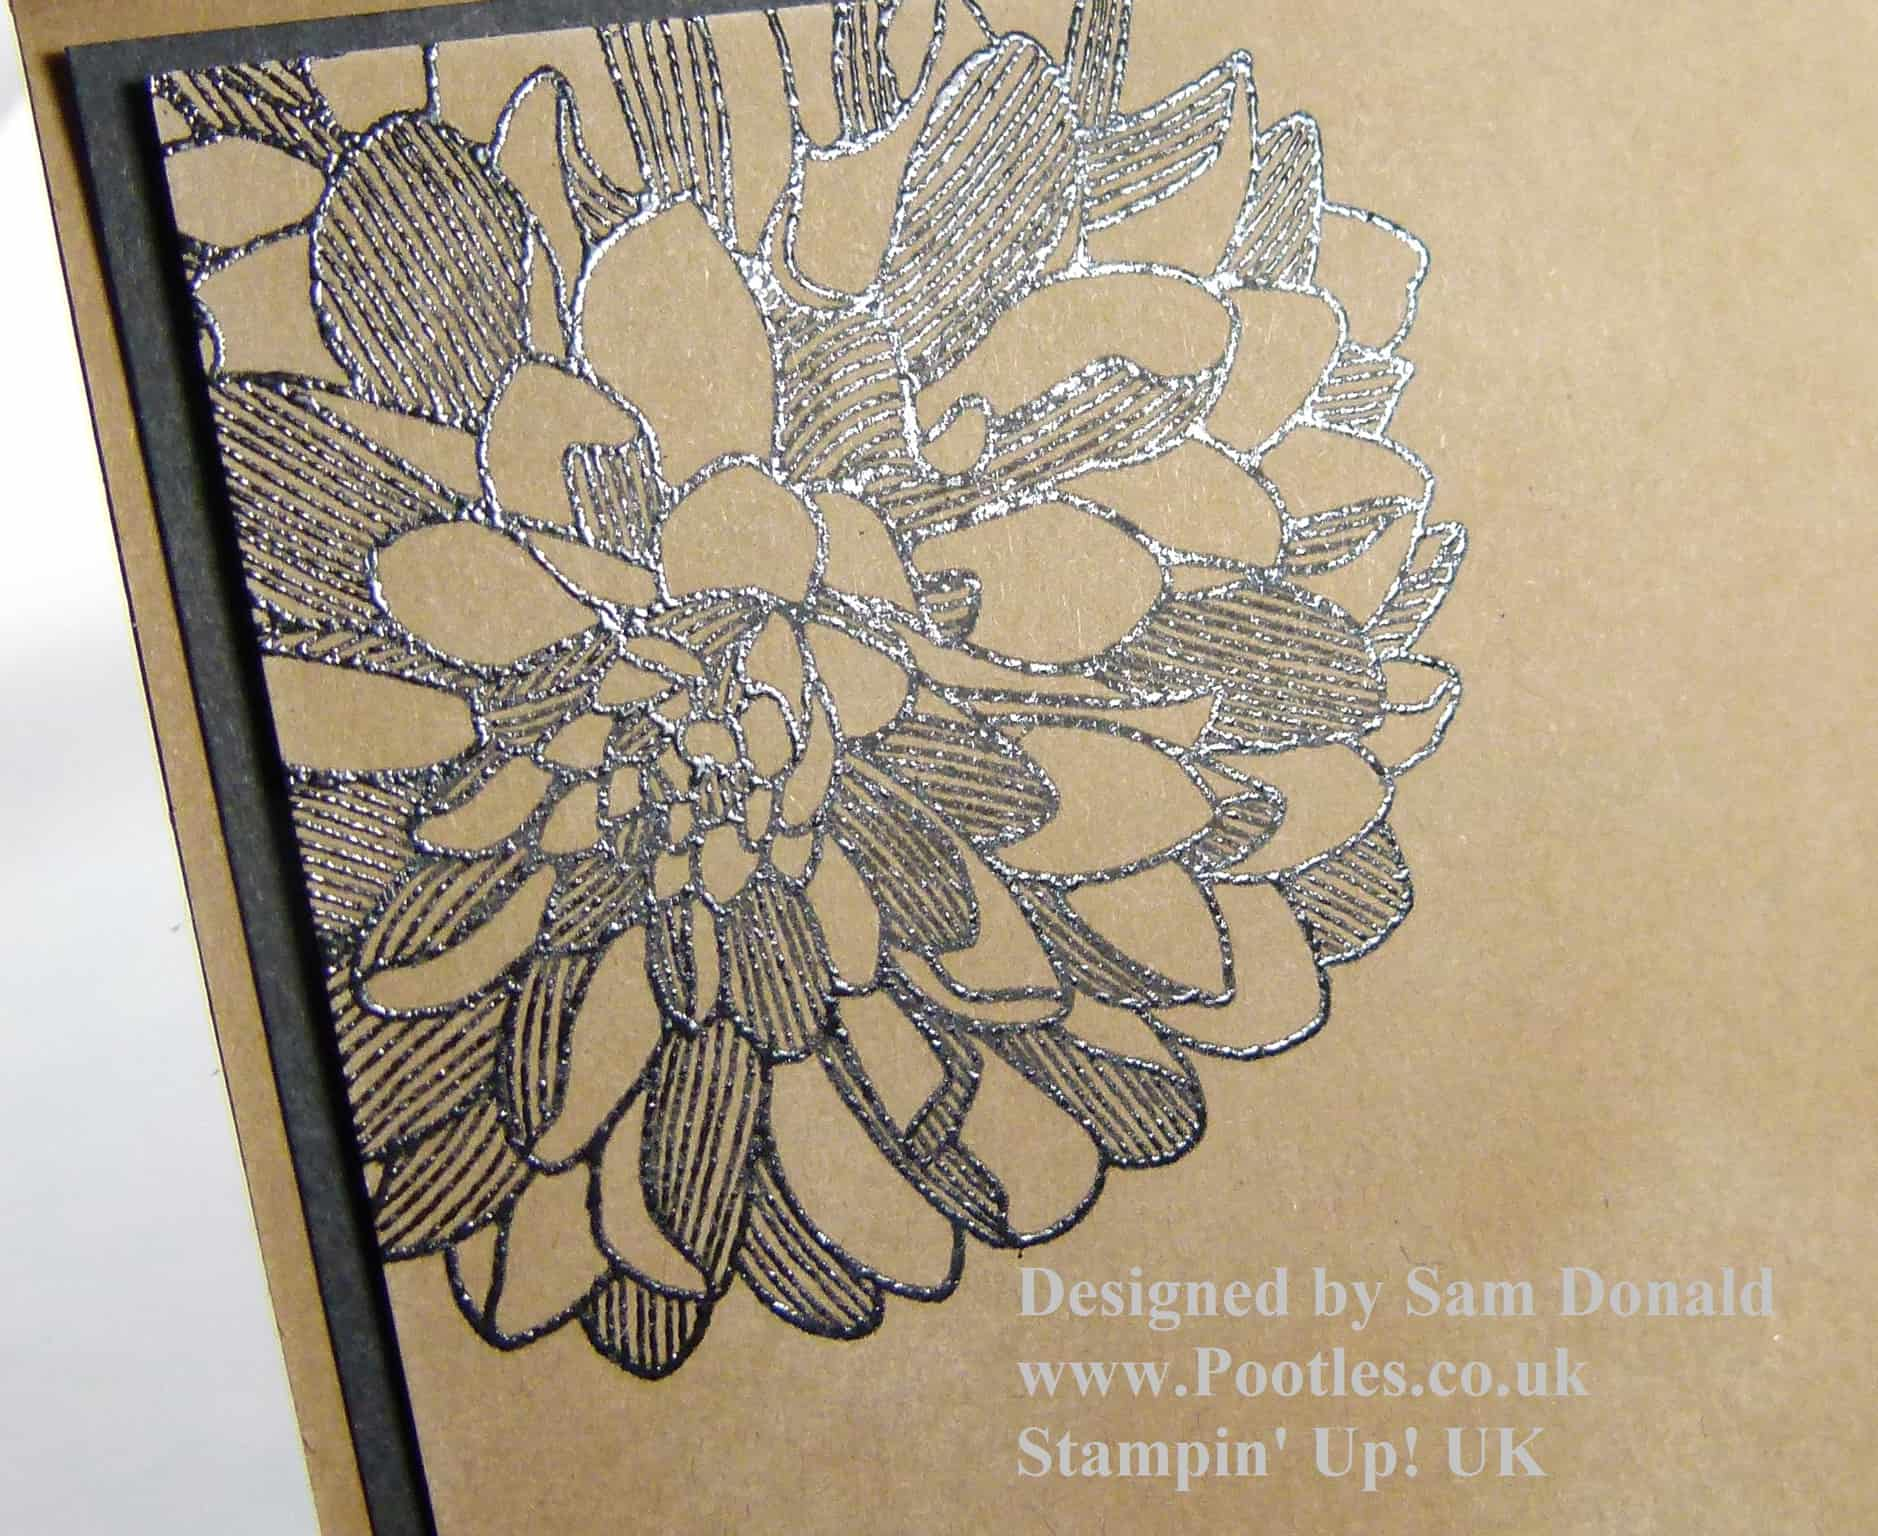 POOTLES Heat Embossed Regarding Dahlias 2